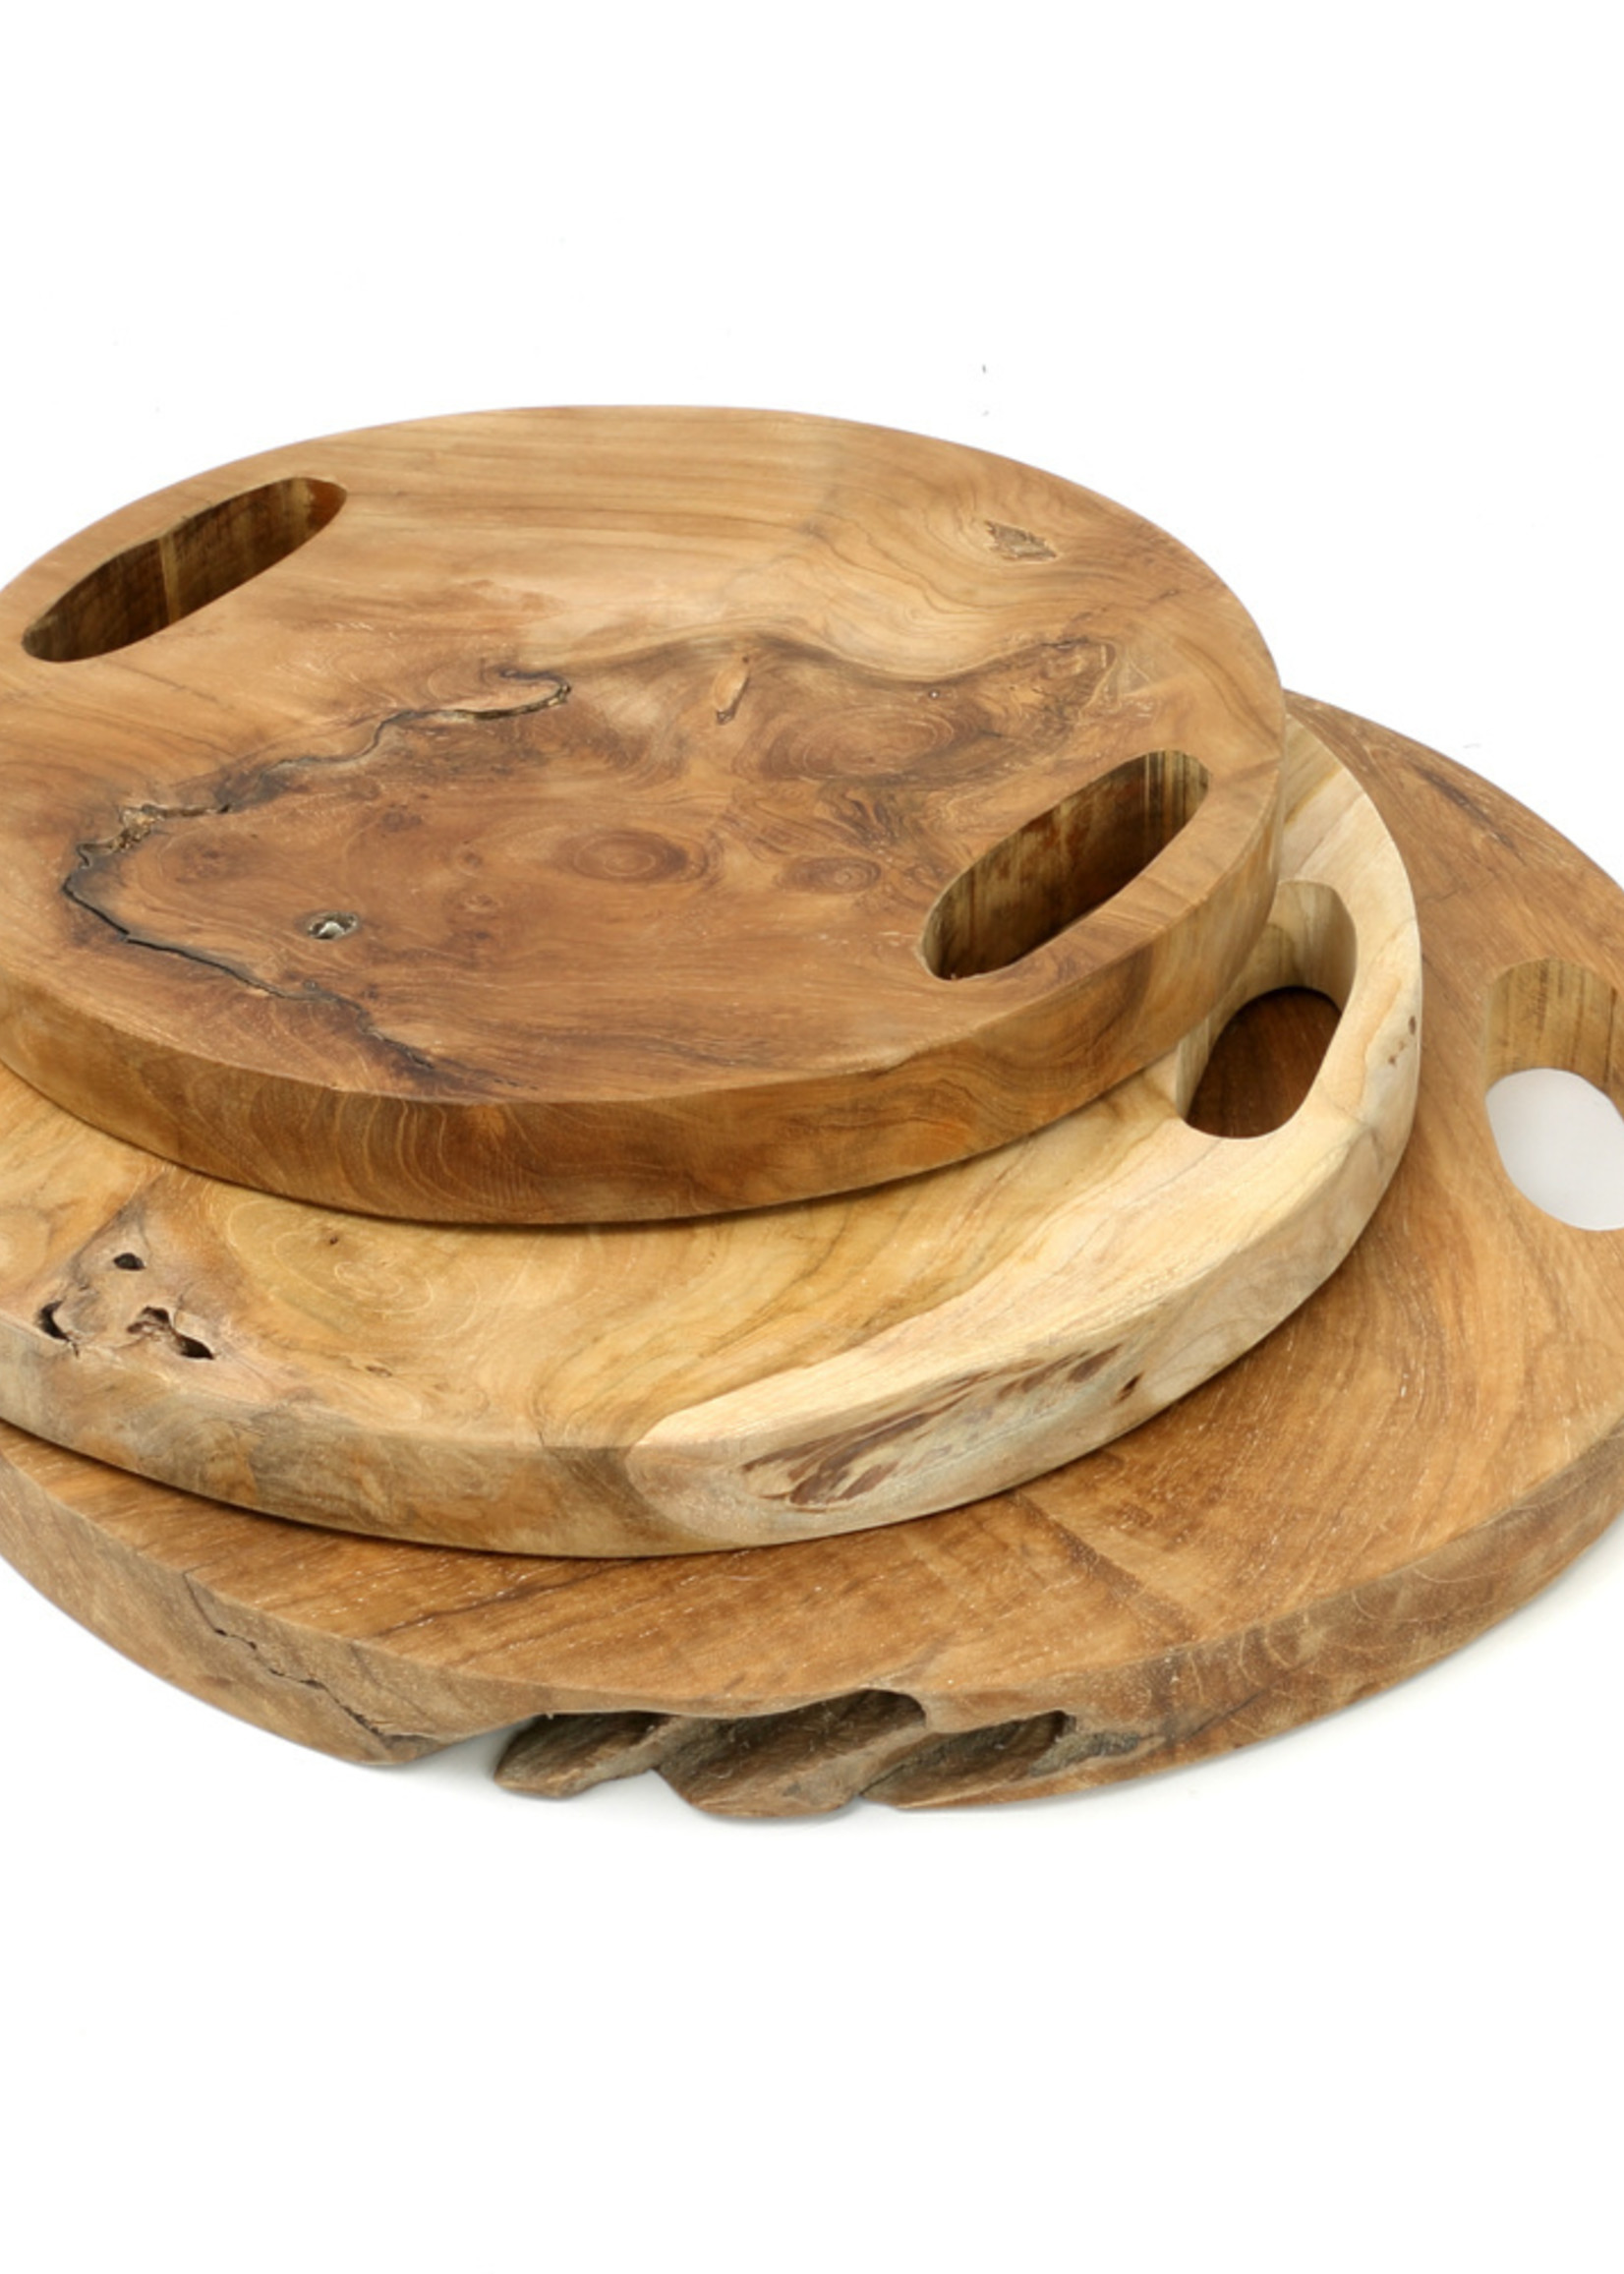 The Teak Root Tray - Natural - L